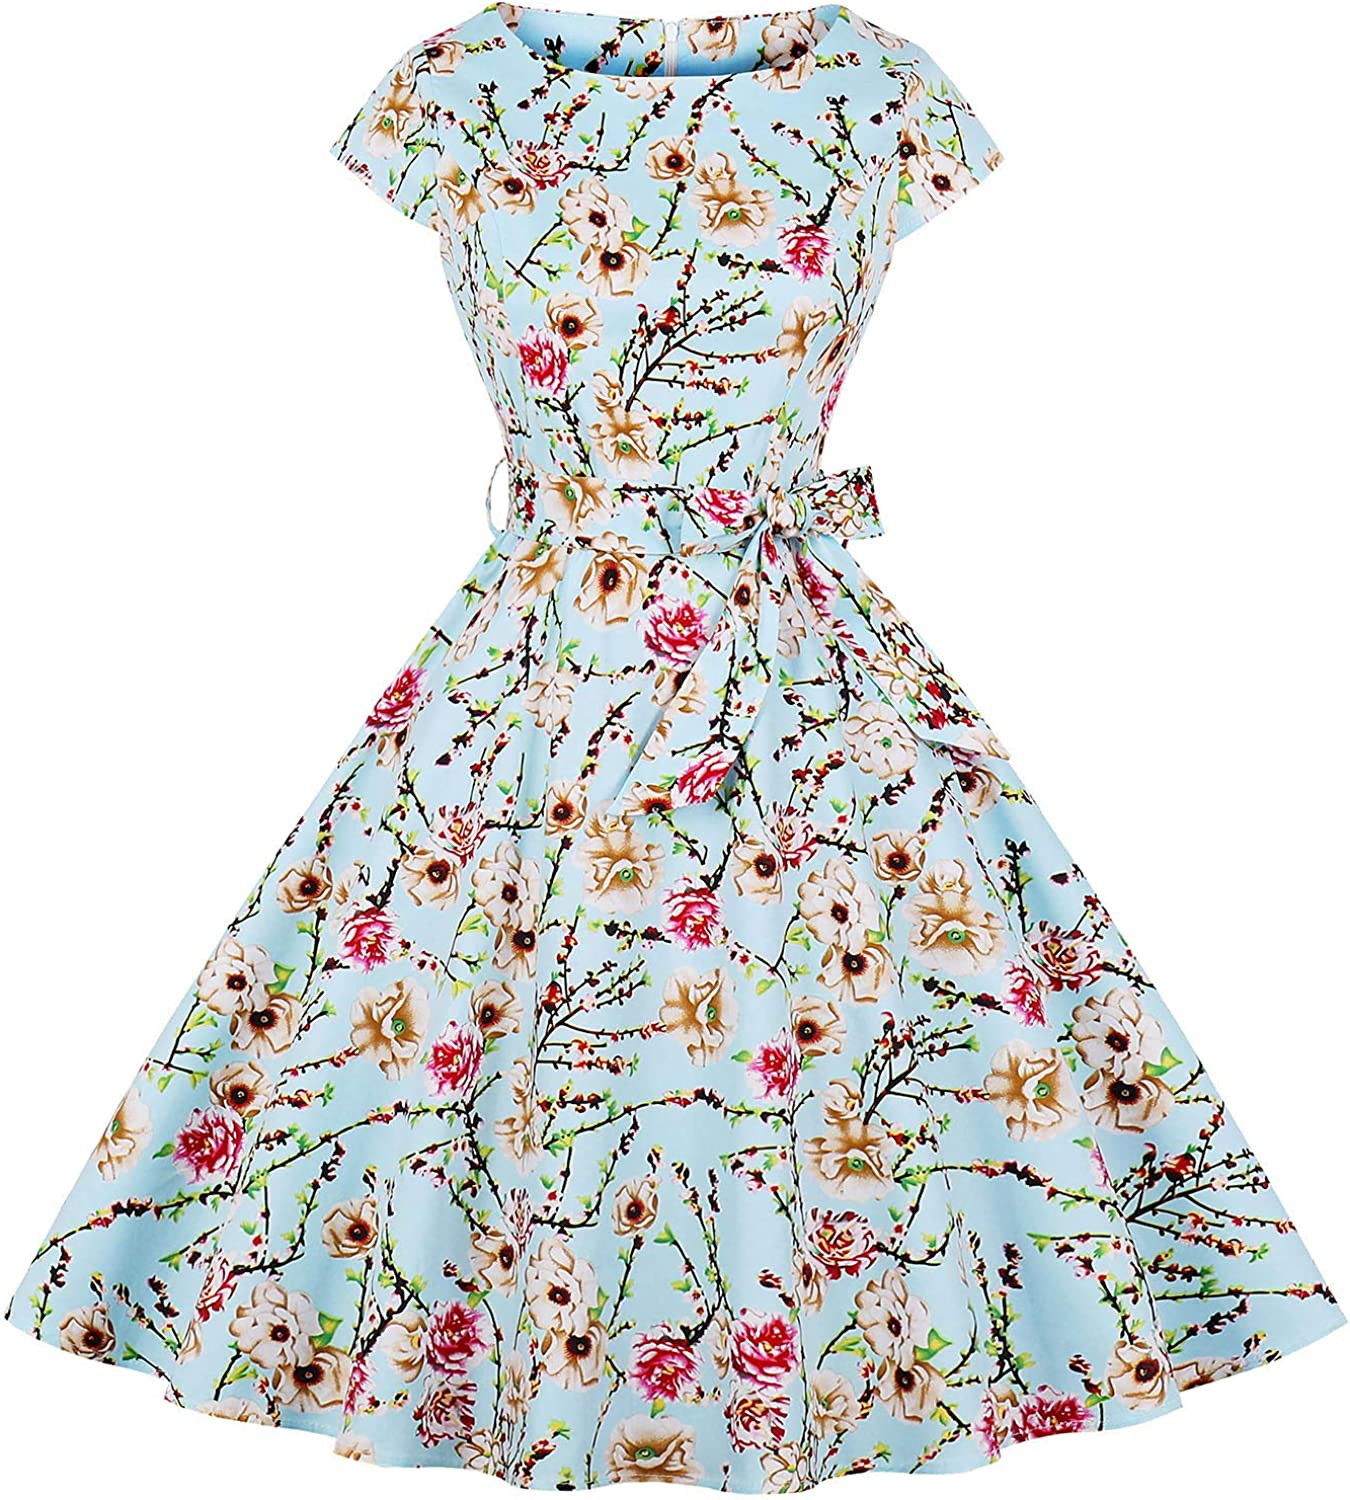 GALSANG Womens Vintage 1950s Cap Sleeve Swing Dress Floral Print aLine Party Cocktail Dress Dr04